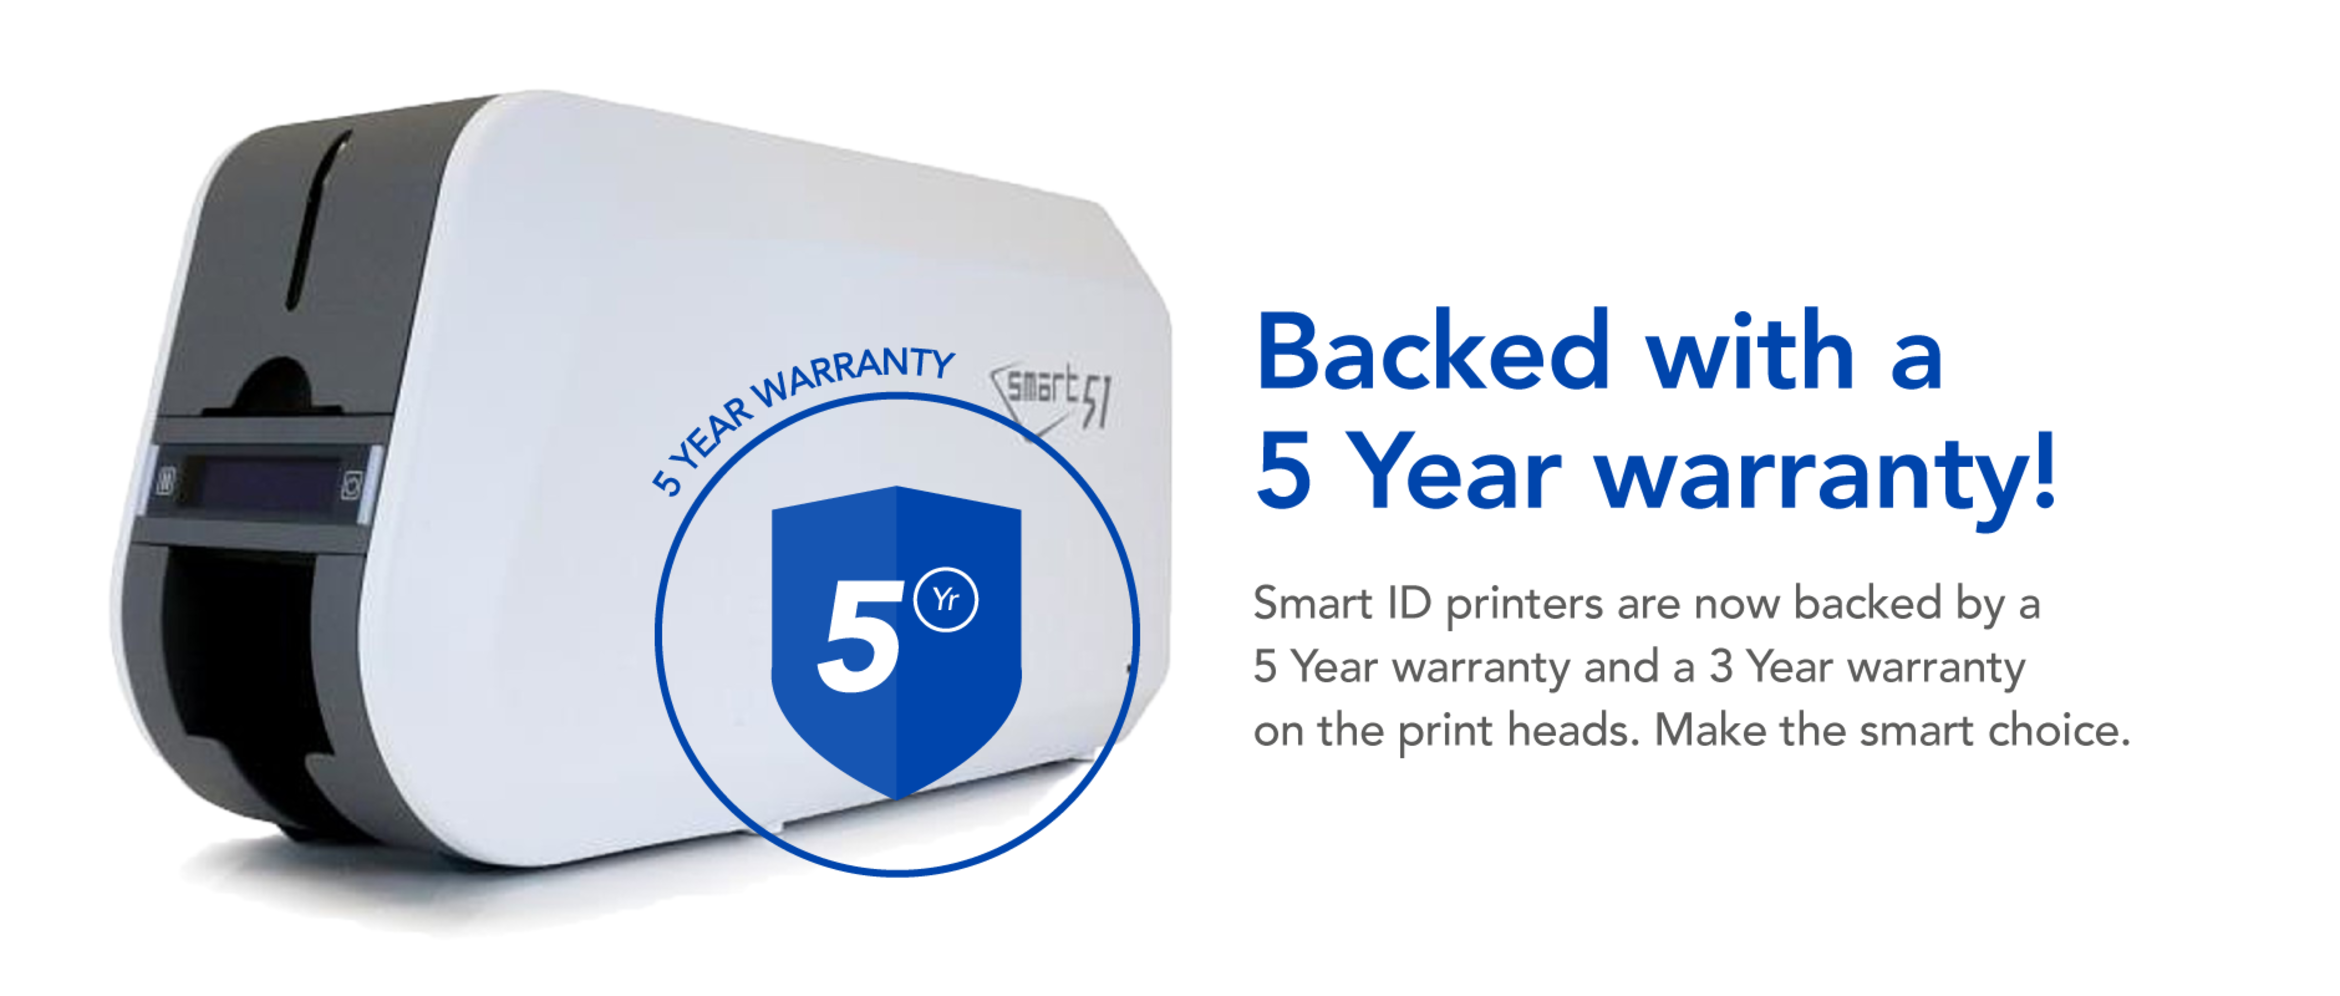 Backed with a 5 Year warranty!